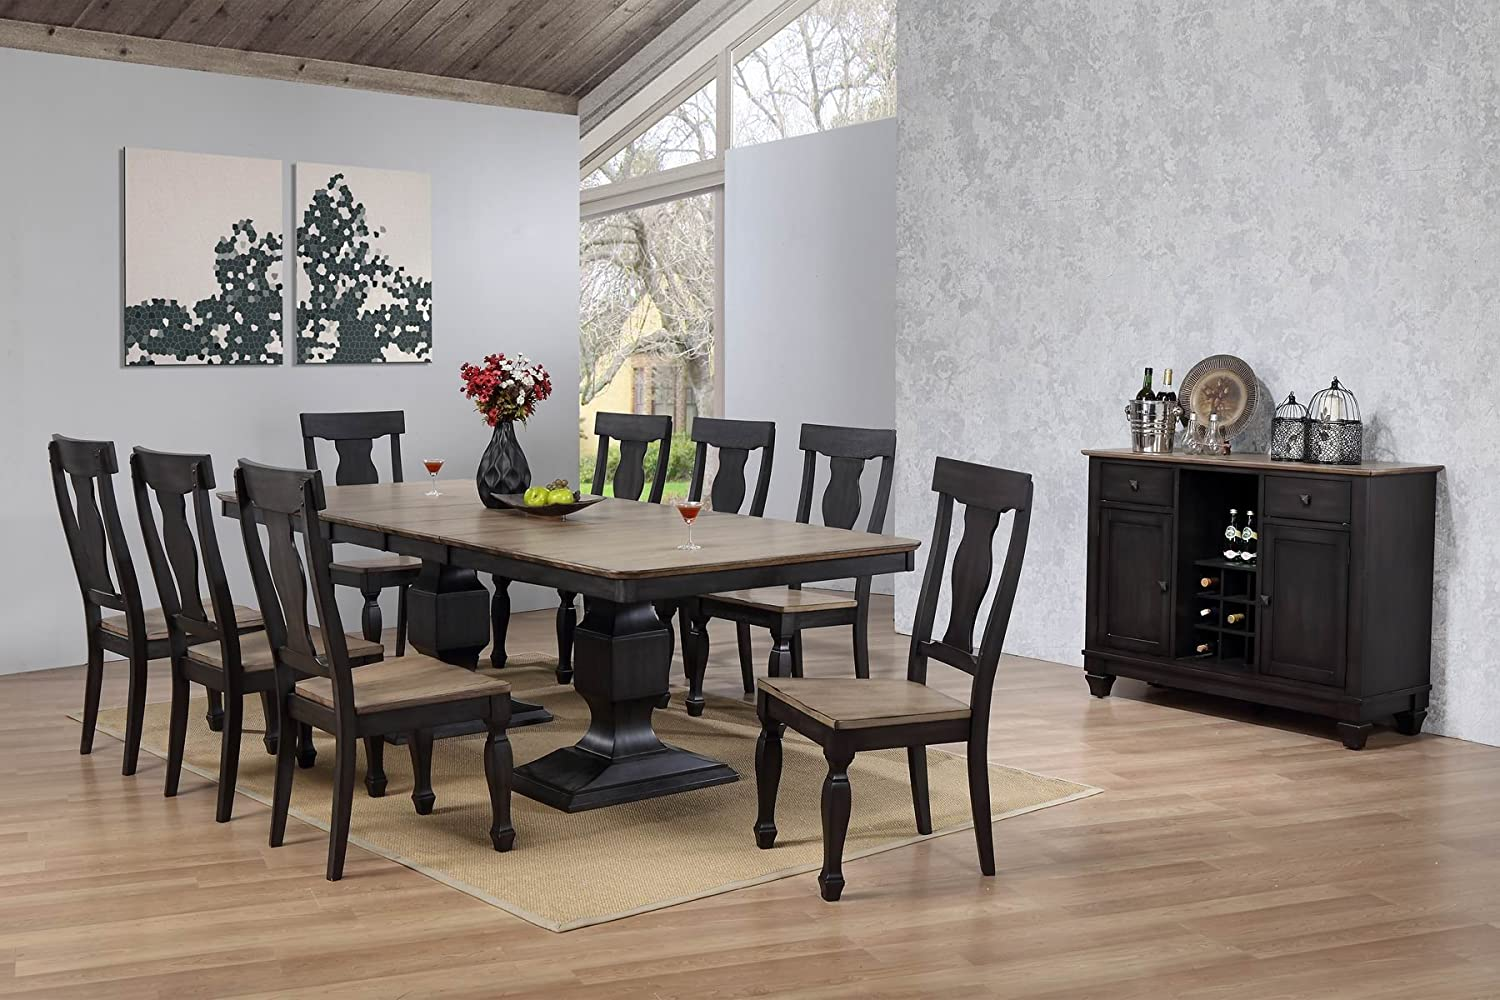 Amazon com kings brand alleyton 10 piece charcoal oak wood dining room set table 8 chairs buffet server table chair sets